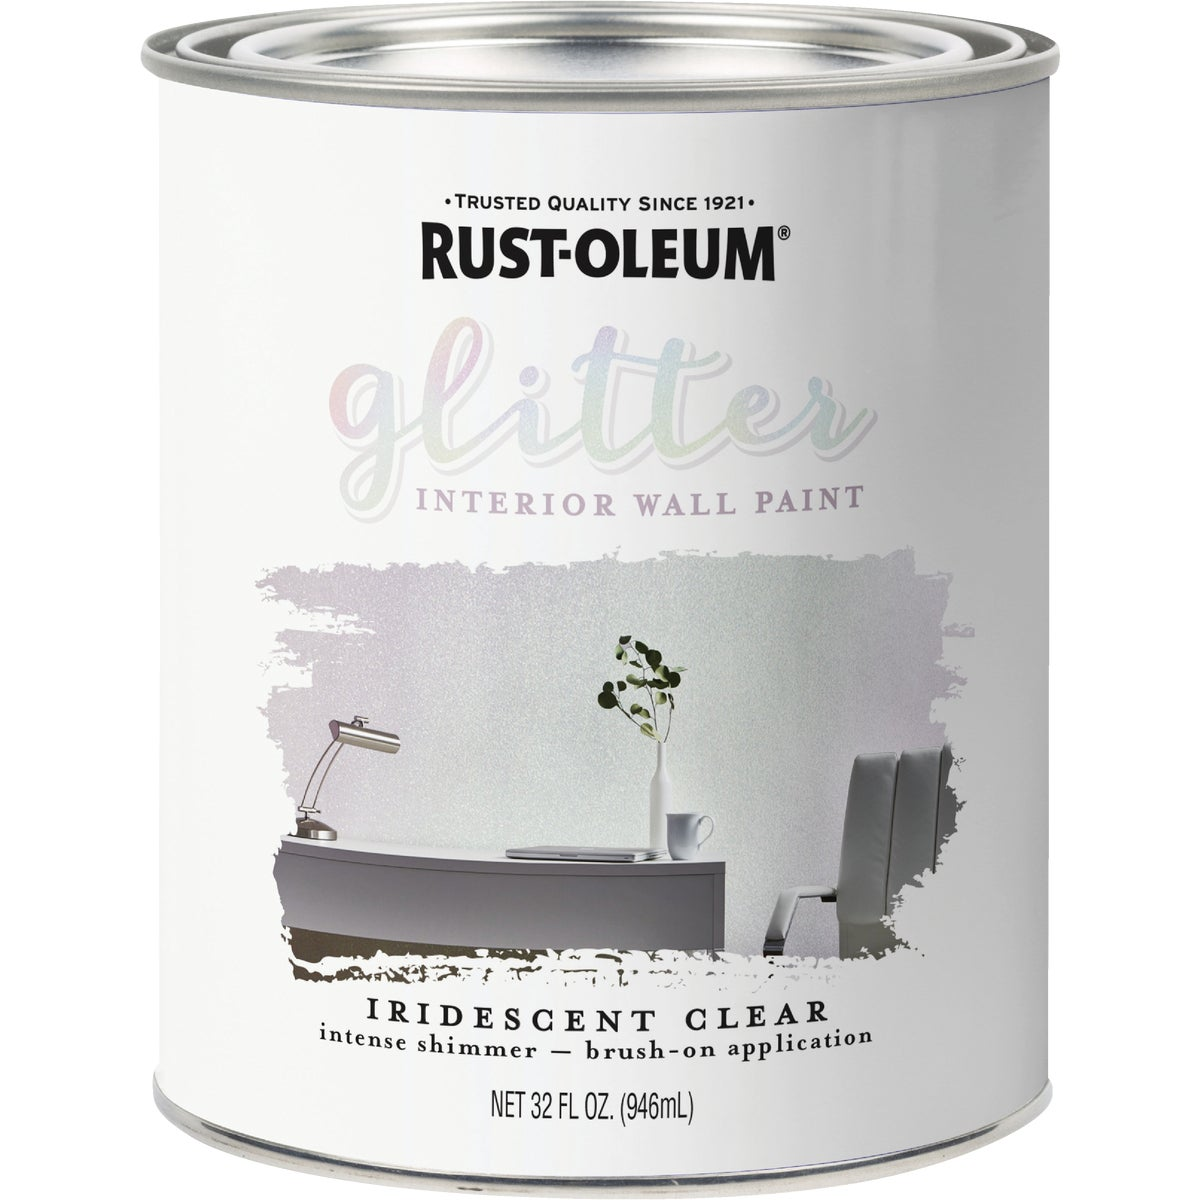 COLOR 4 FILL STICK - 215365 by Rustoleum